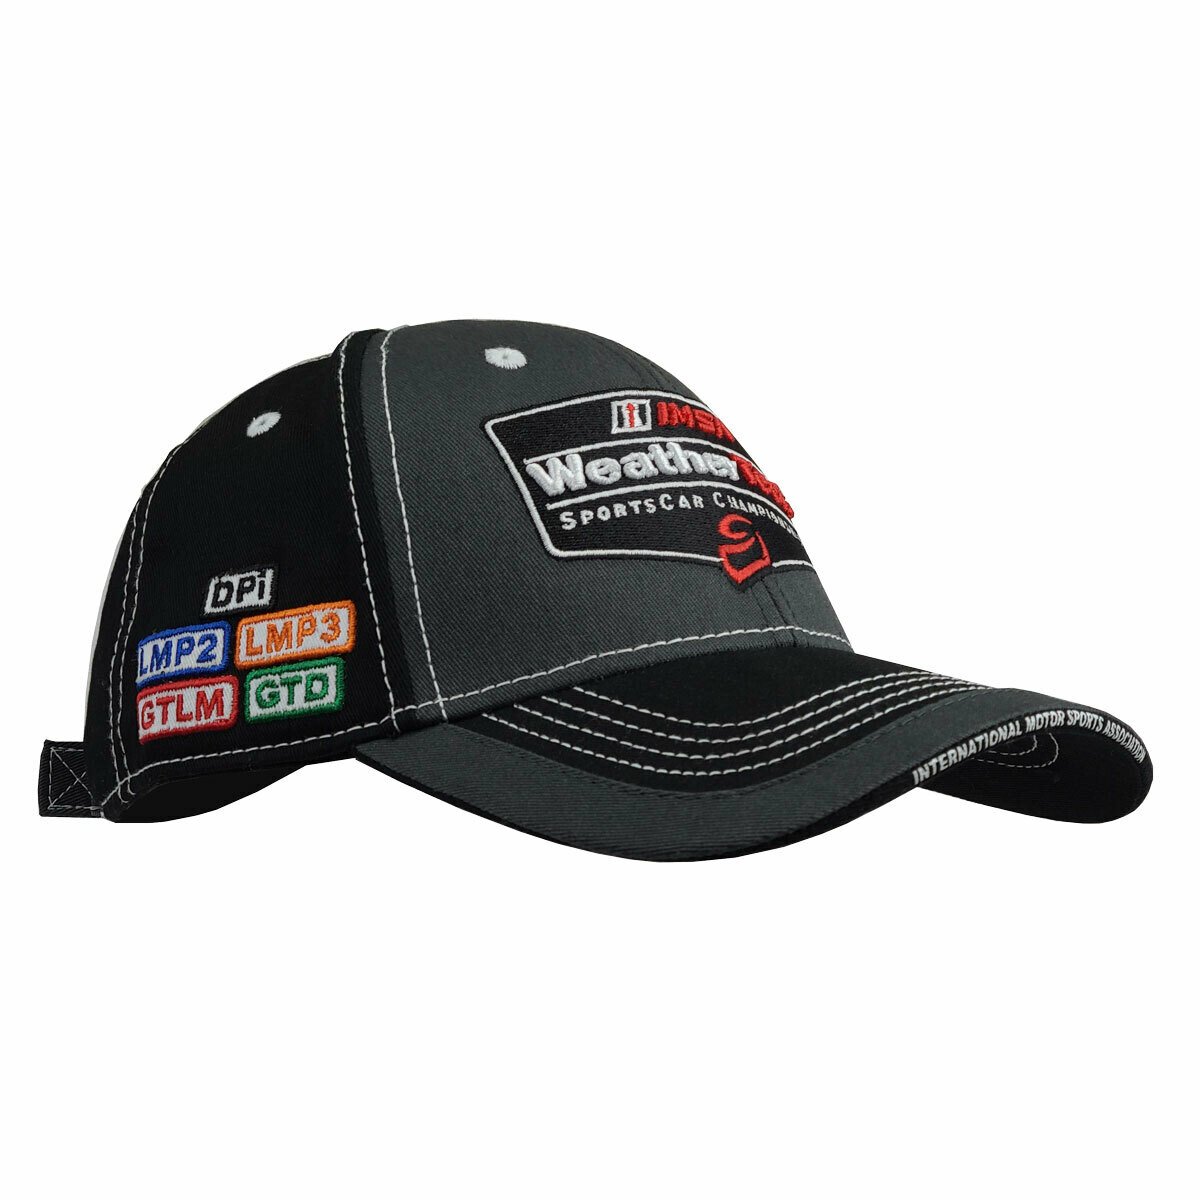 WeatherTech 2021 Hat-Char/Black